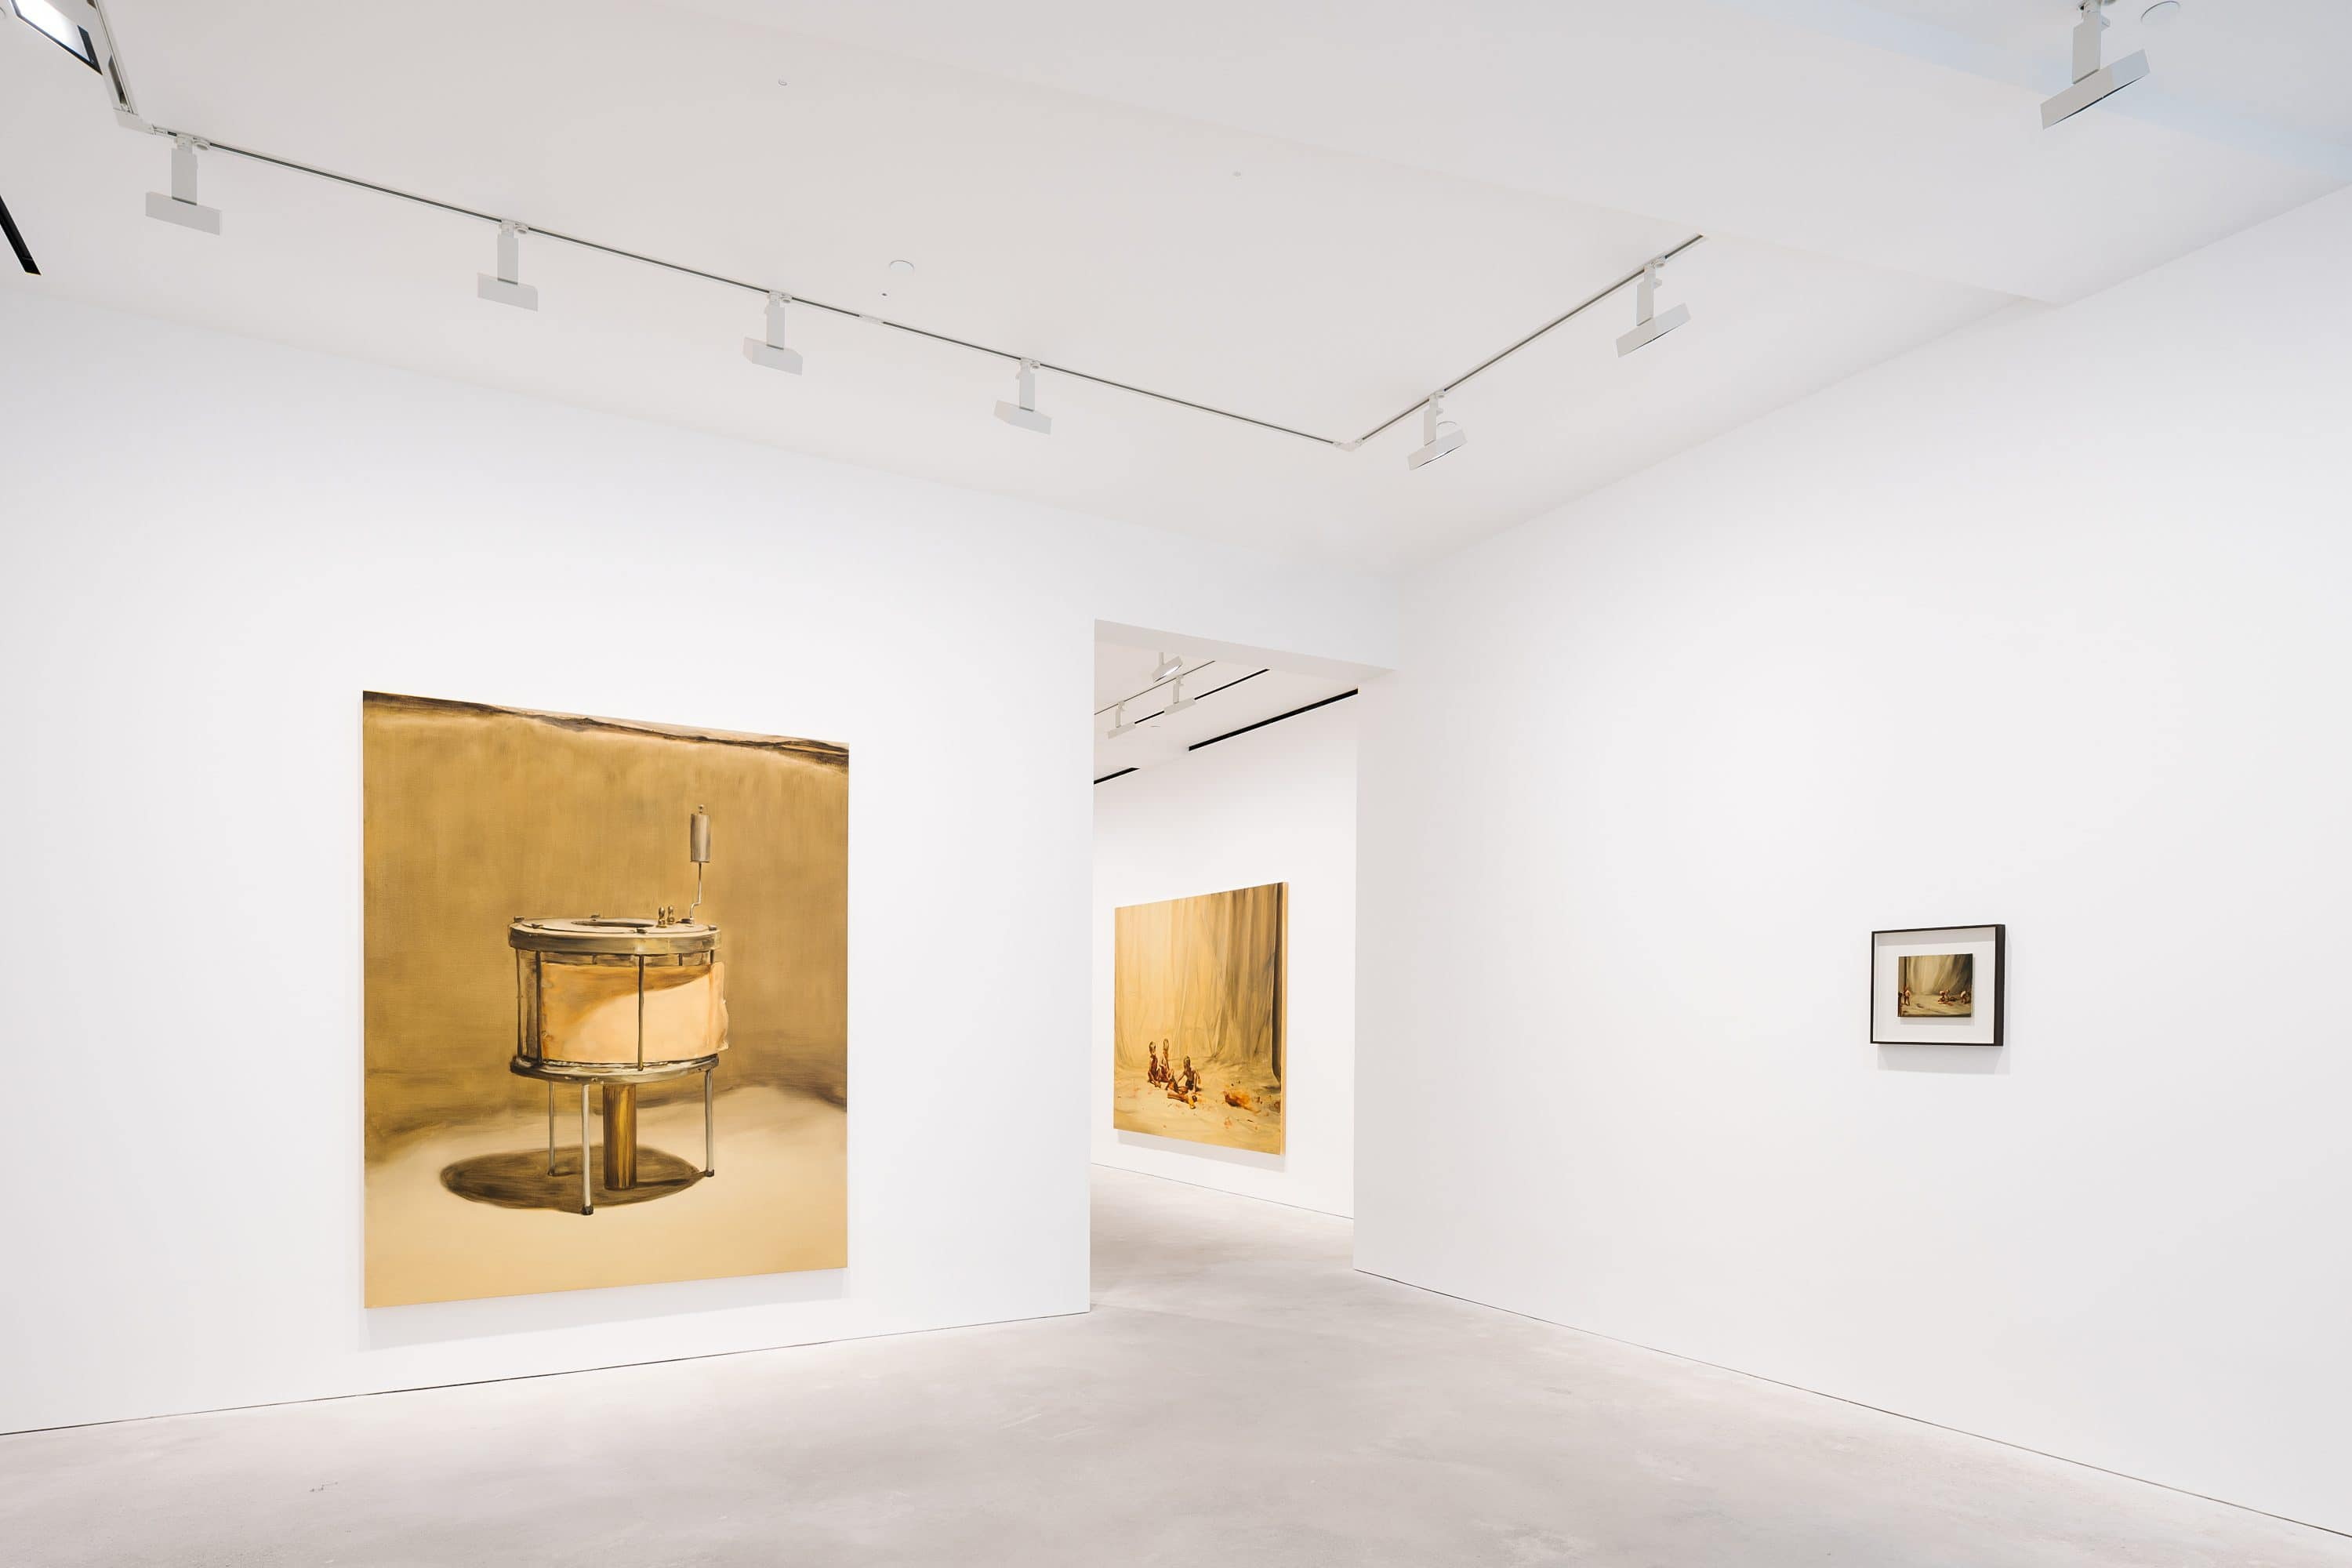 The stark white interior of a gallery is in H Queen's building punctuated by pops of yellow artwork canvases